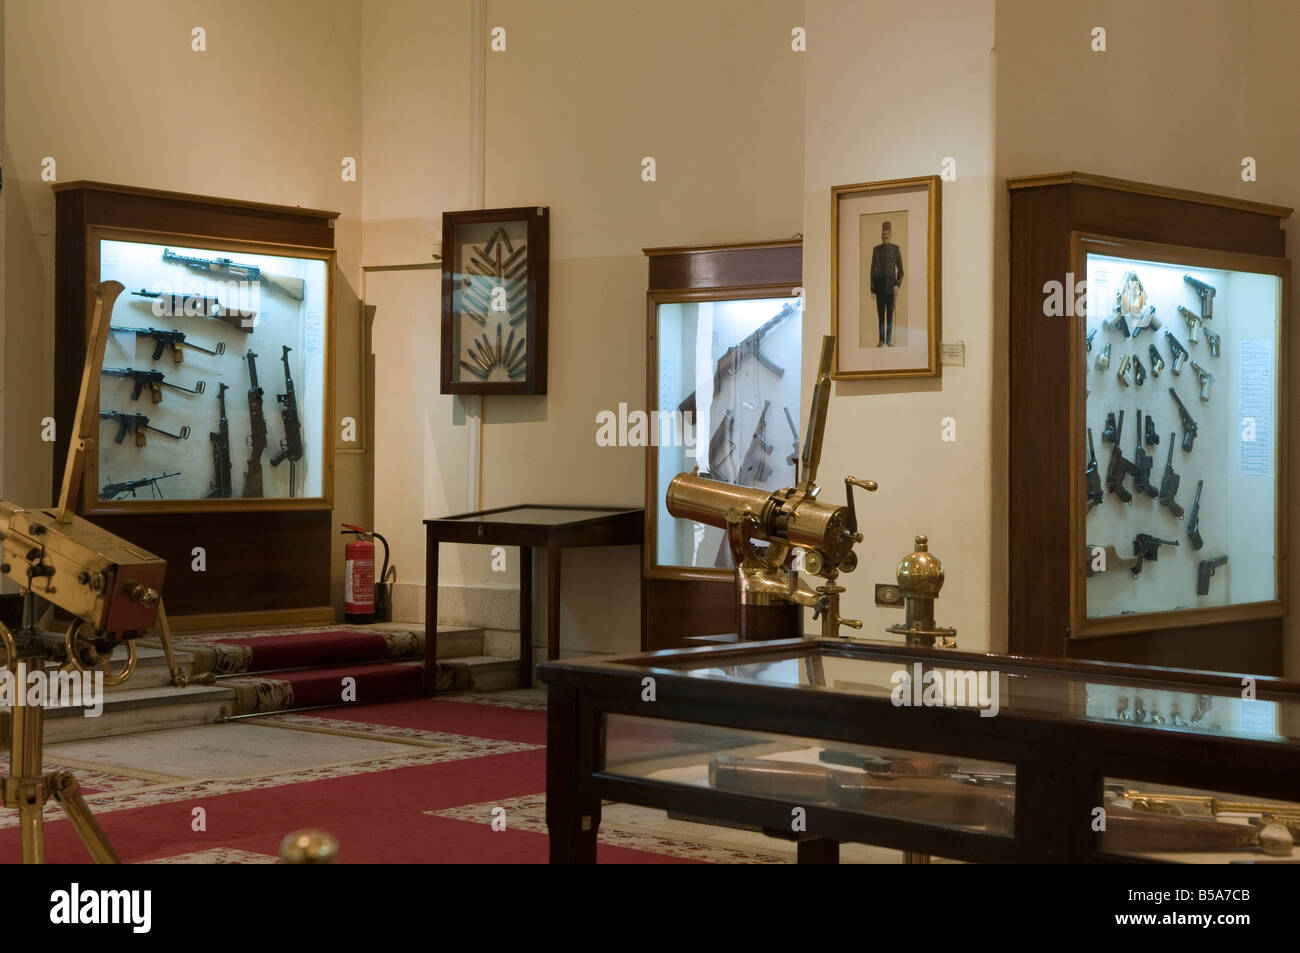 Old weapons displayed at the the Arms museum in Abdeen Palace, Cairo Egypt - Stock Image